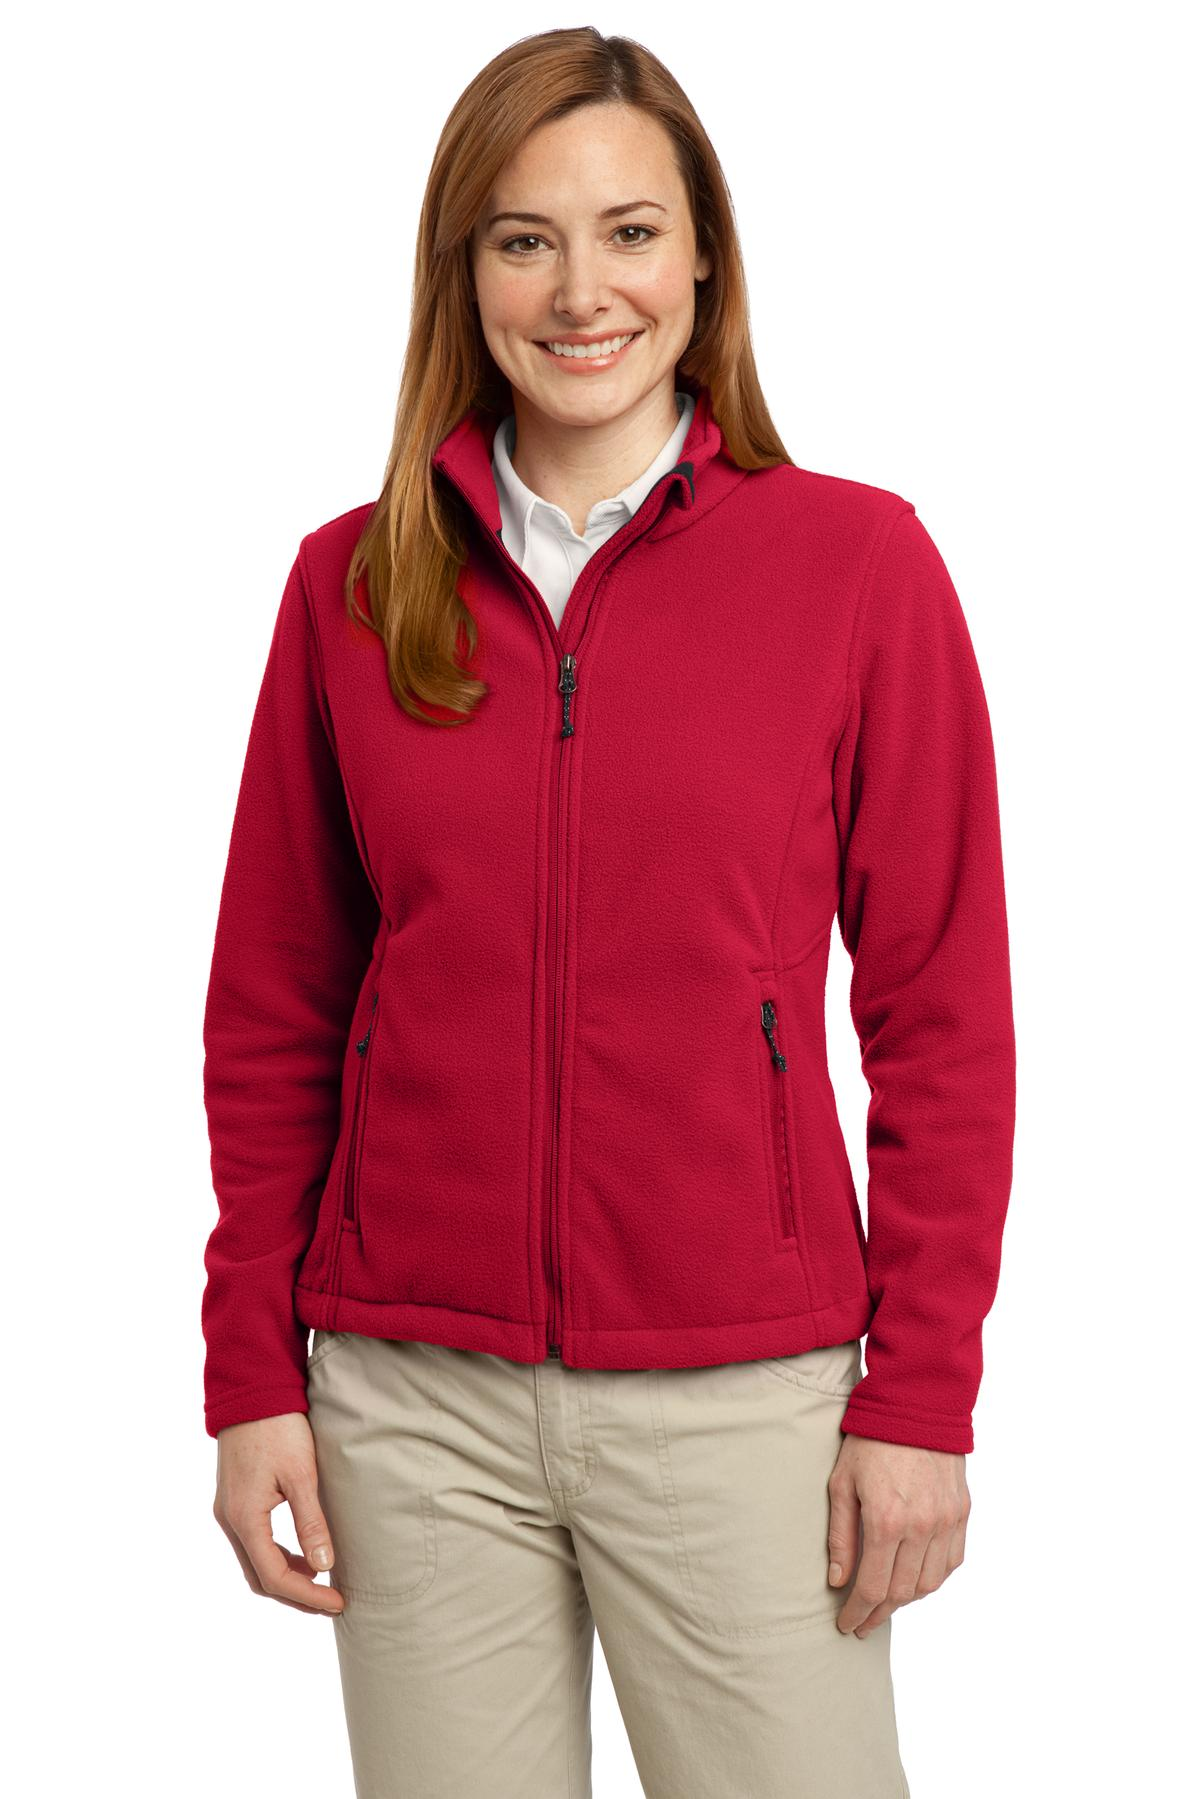 Outerwear-Polyester-Fleece-37